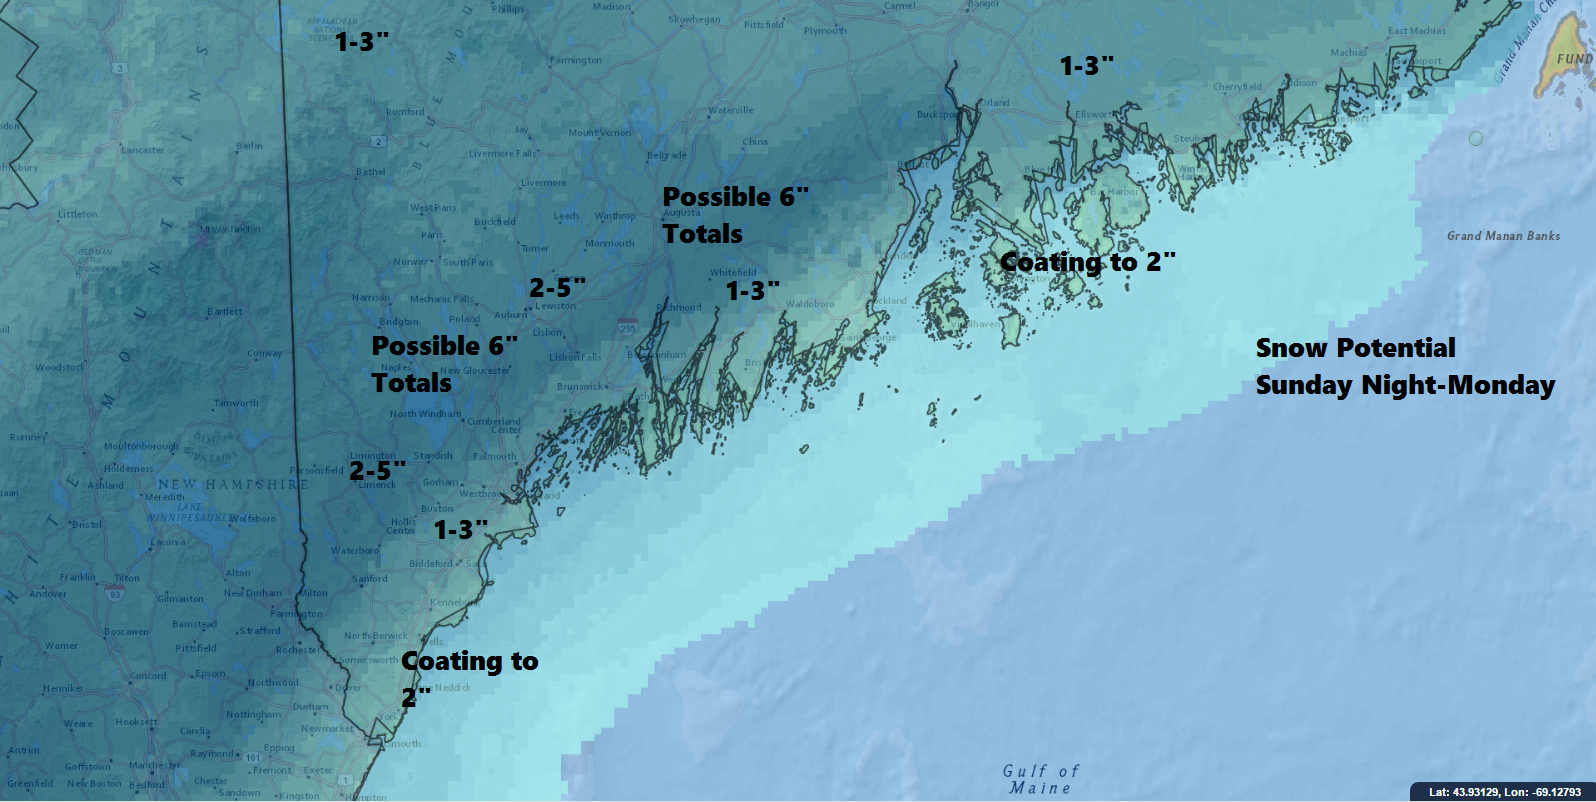 A plowable snow event is likely for most areas Sunday night and Monday